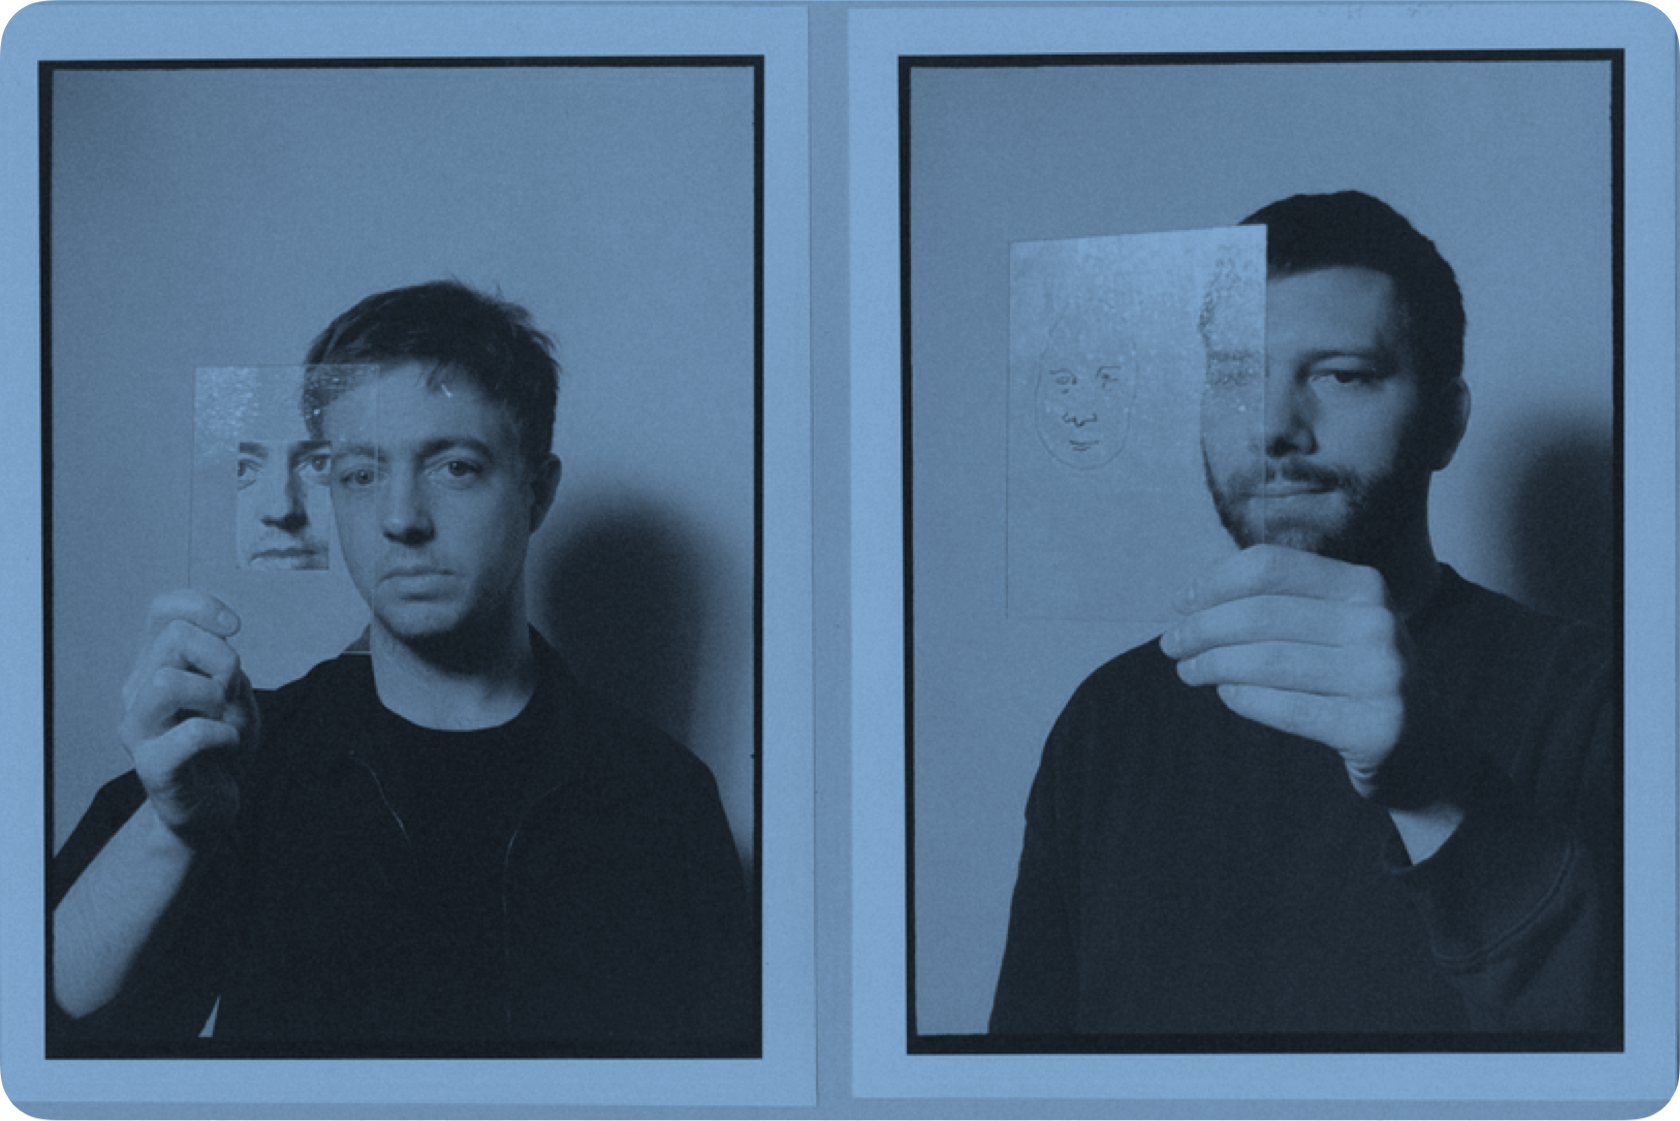 Members of Mount Kimbie holding drawn pictures in front of their faces